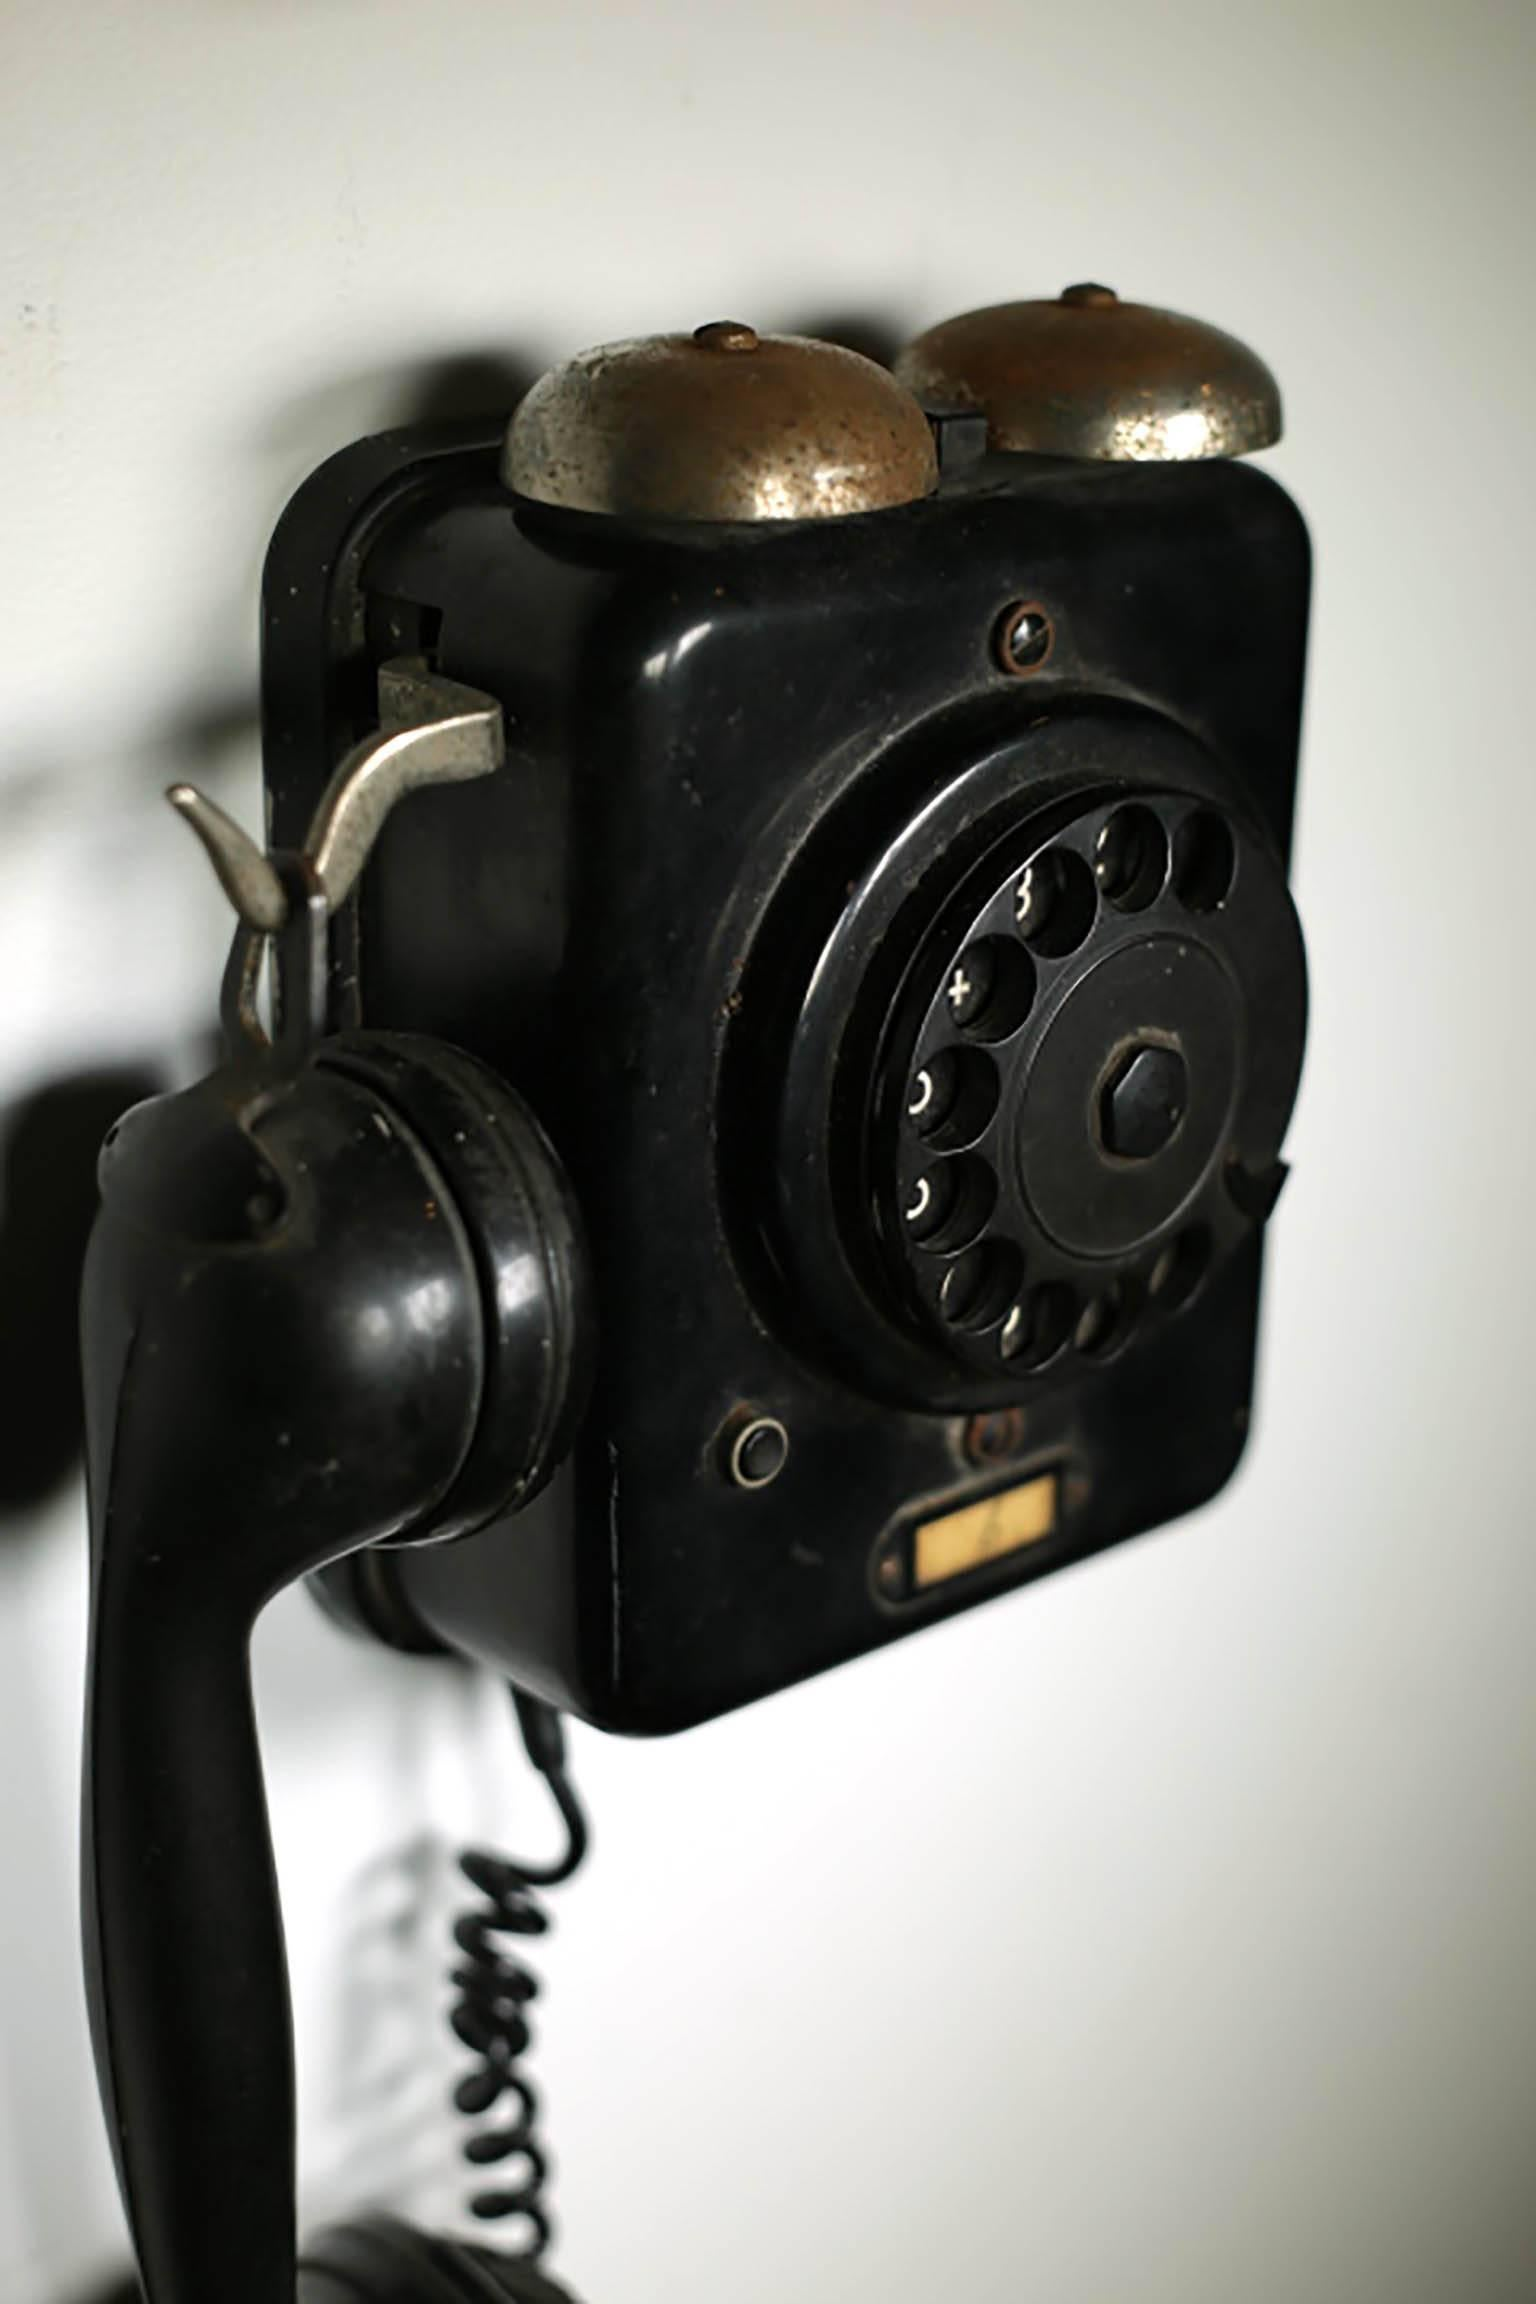 small resolution of metal body with a bakelite rotary dial telephone circa 1950s might possible work if